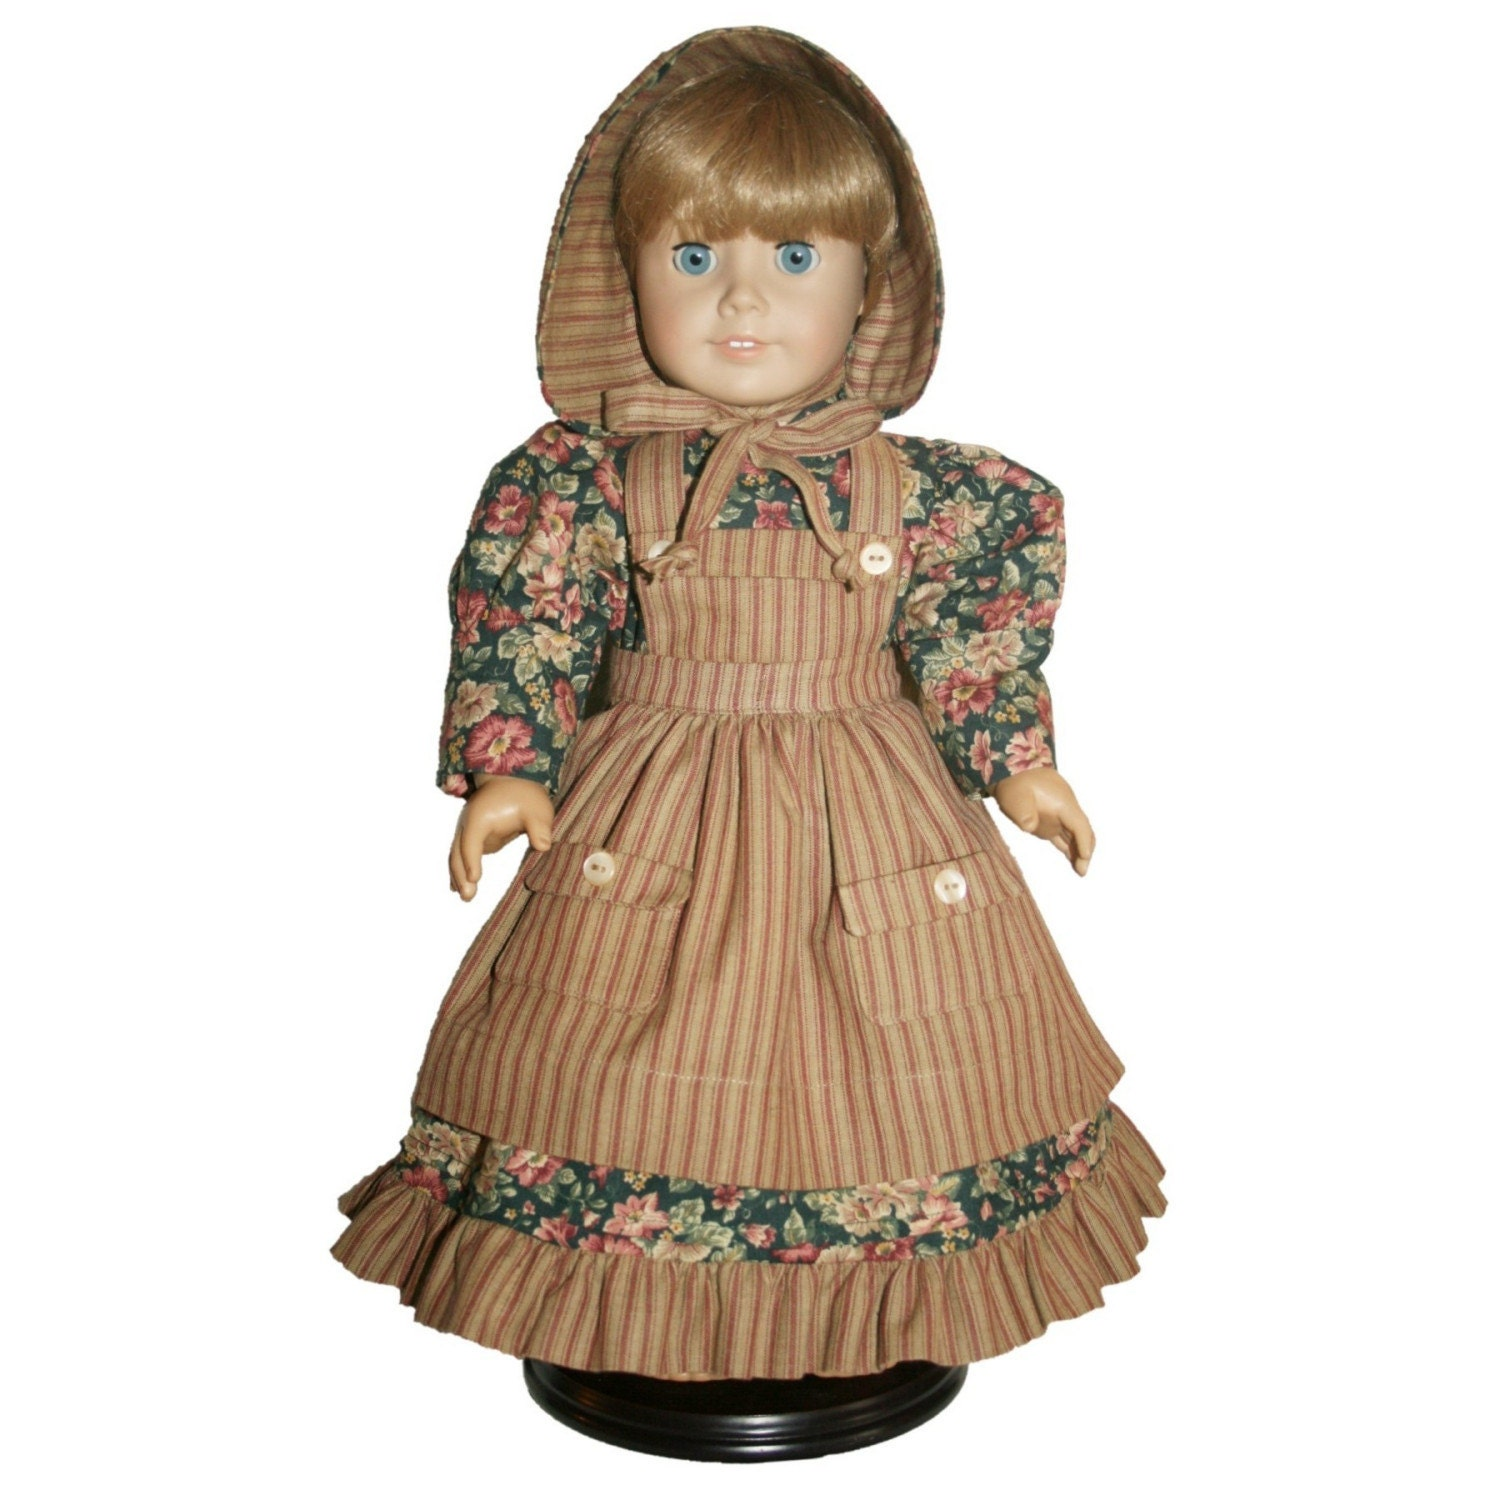 18 Inch Doll Outfit Old Fashioned Dress Apron And Bonnet